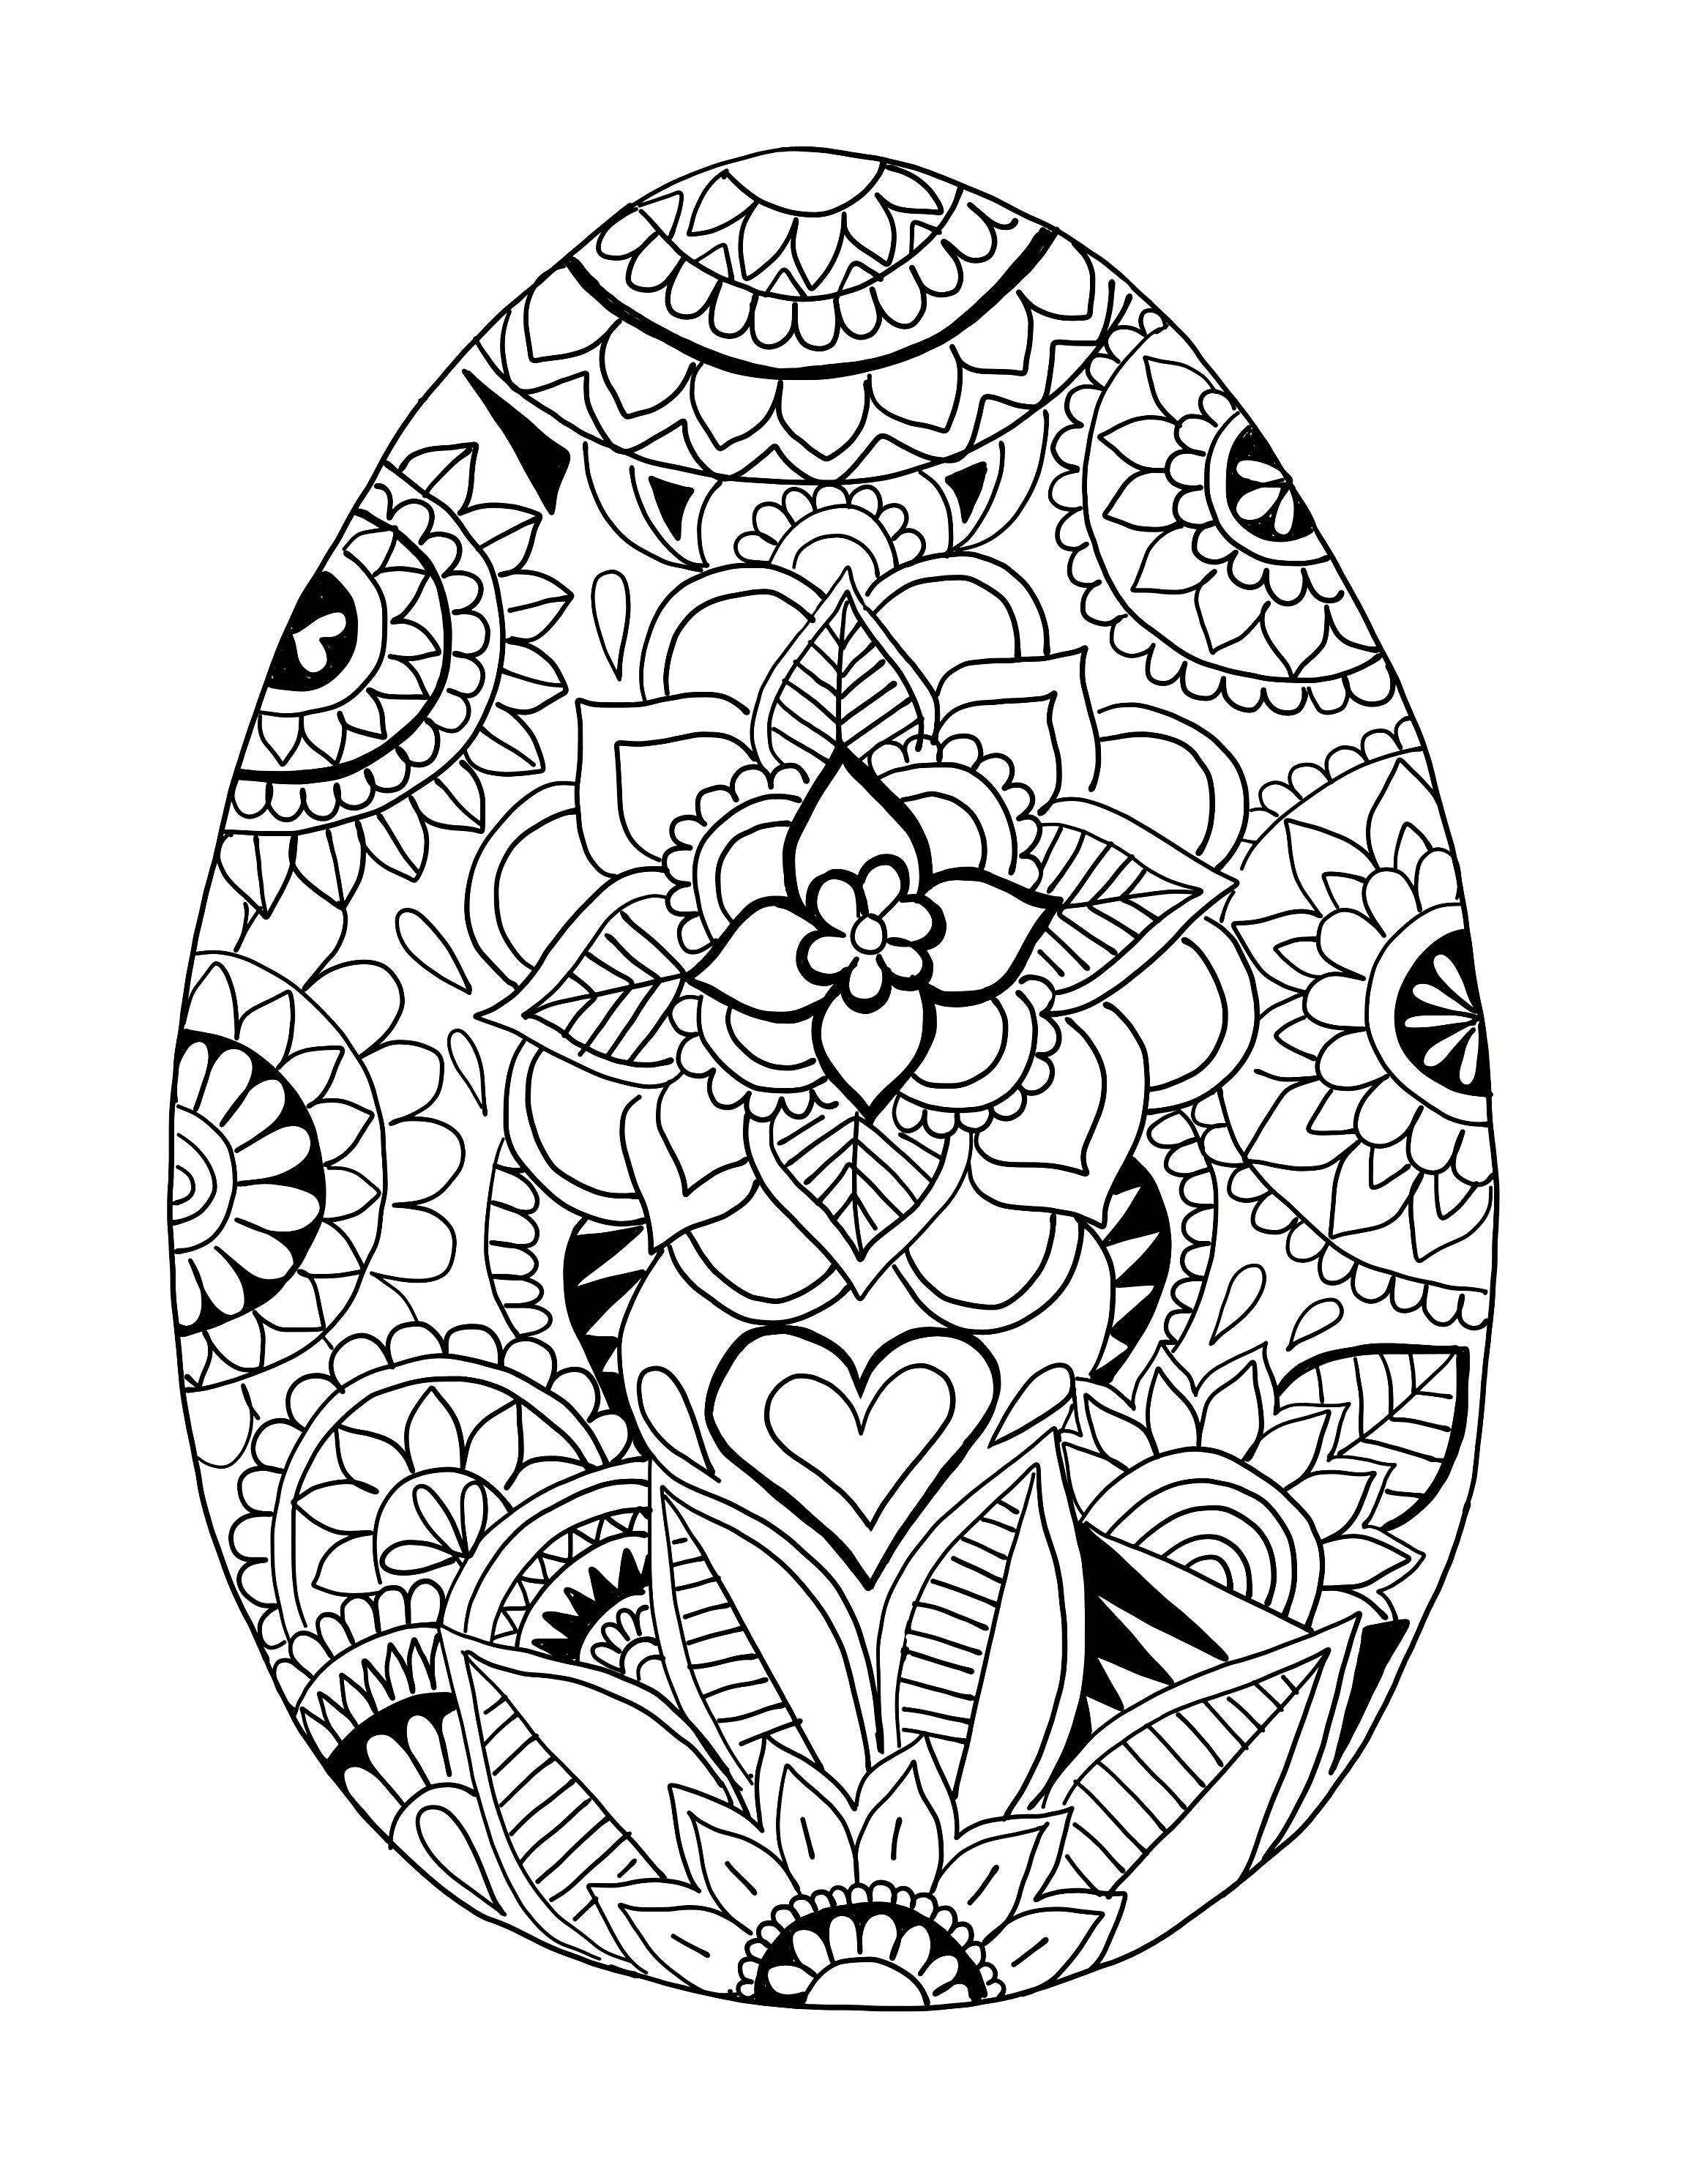 Easter Egg Coloring Page Easter Egg Printable Coloring Page Ooly Entitlementtrap Com Easter Coloring Pictures Coloring Eggs Easter Coloring Pages Printable